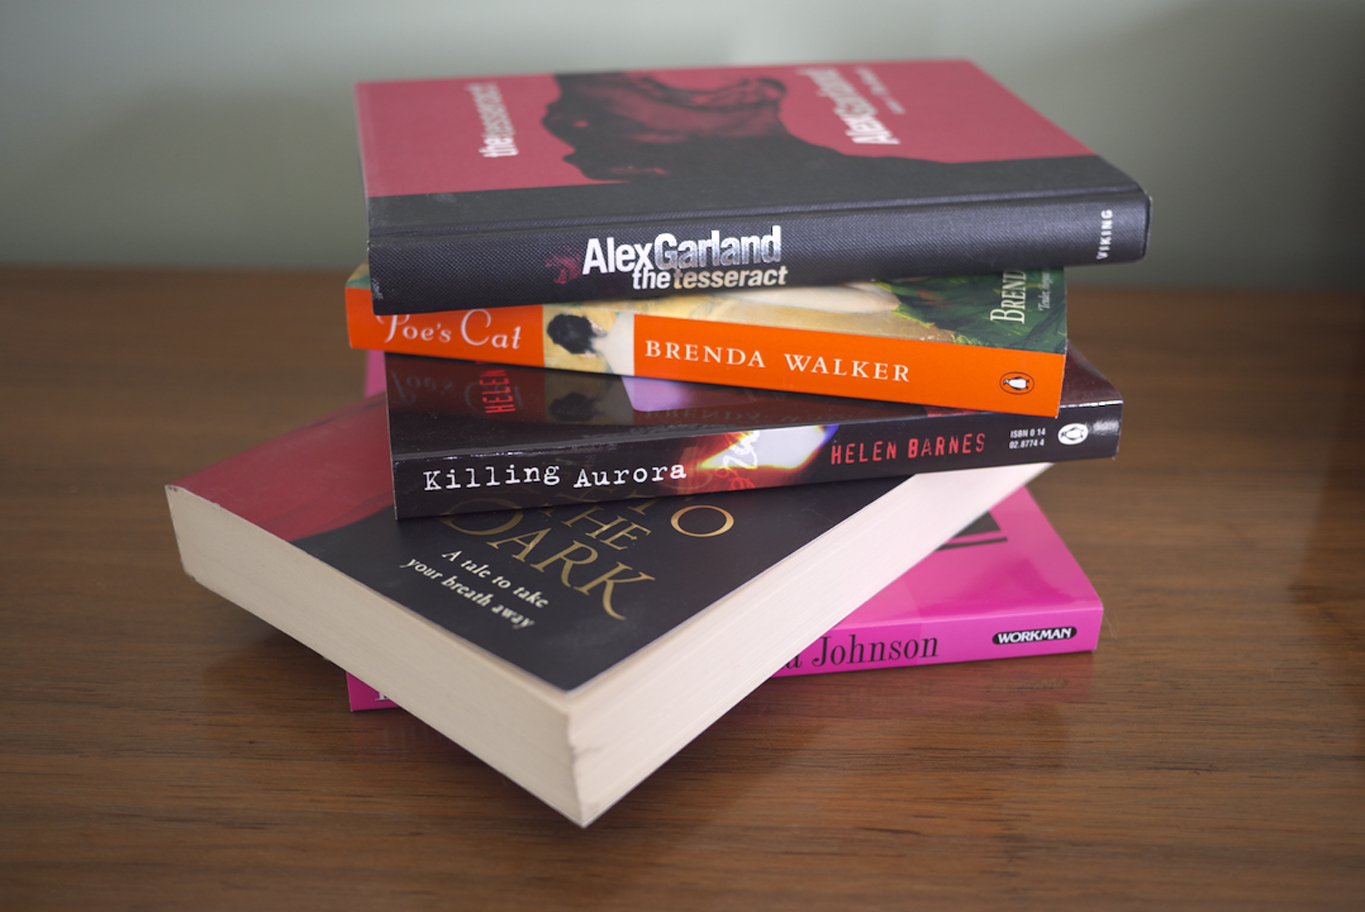 The penguin stack         Who have been the biggest 3 – 5 influences in your life, in terms of your career and doing creative/mindful work?     My art directors at Penguin and Oxford, Tony and Steve, who taught me everything I know about typography. They also showed me that real designers are not just about the right taste (and wearing the right black-rimmed glasses). That being a designer is all about dedicated diligent exacting detailed work, and that this is what builds creative expertise.  My boss Mary who kicks ass as a design school chair, graphic designer and landscape architect at 74. She showed me that being a designer can be all about having the right taste (and black rimmed glasses) too. Amazing taste informs everything she does - it's like a force of nature her design eye, fierce. She also showed me that you can mother while you have a career and your kids will be ok, and to assert yourself without being mean. I love her to bits.  Also two people who did me wrong in the workplace, not naming names but both of them showed me that untrustworthy people often give the best career advice - often unknowingly of course.